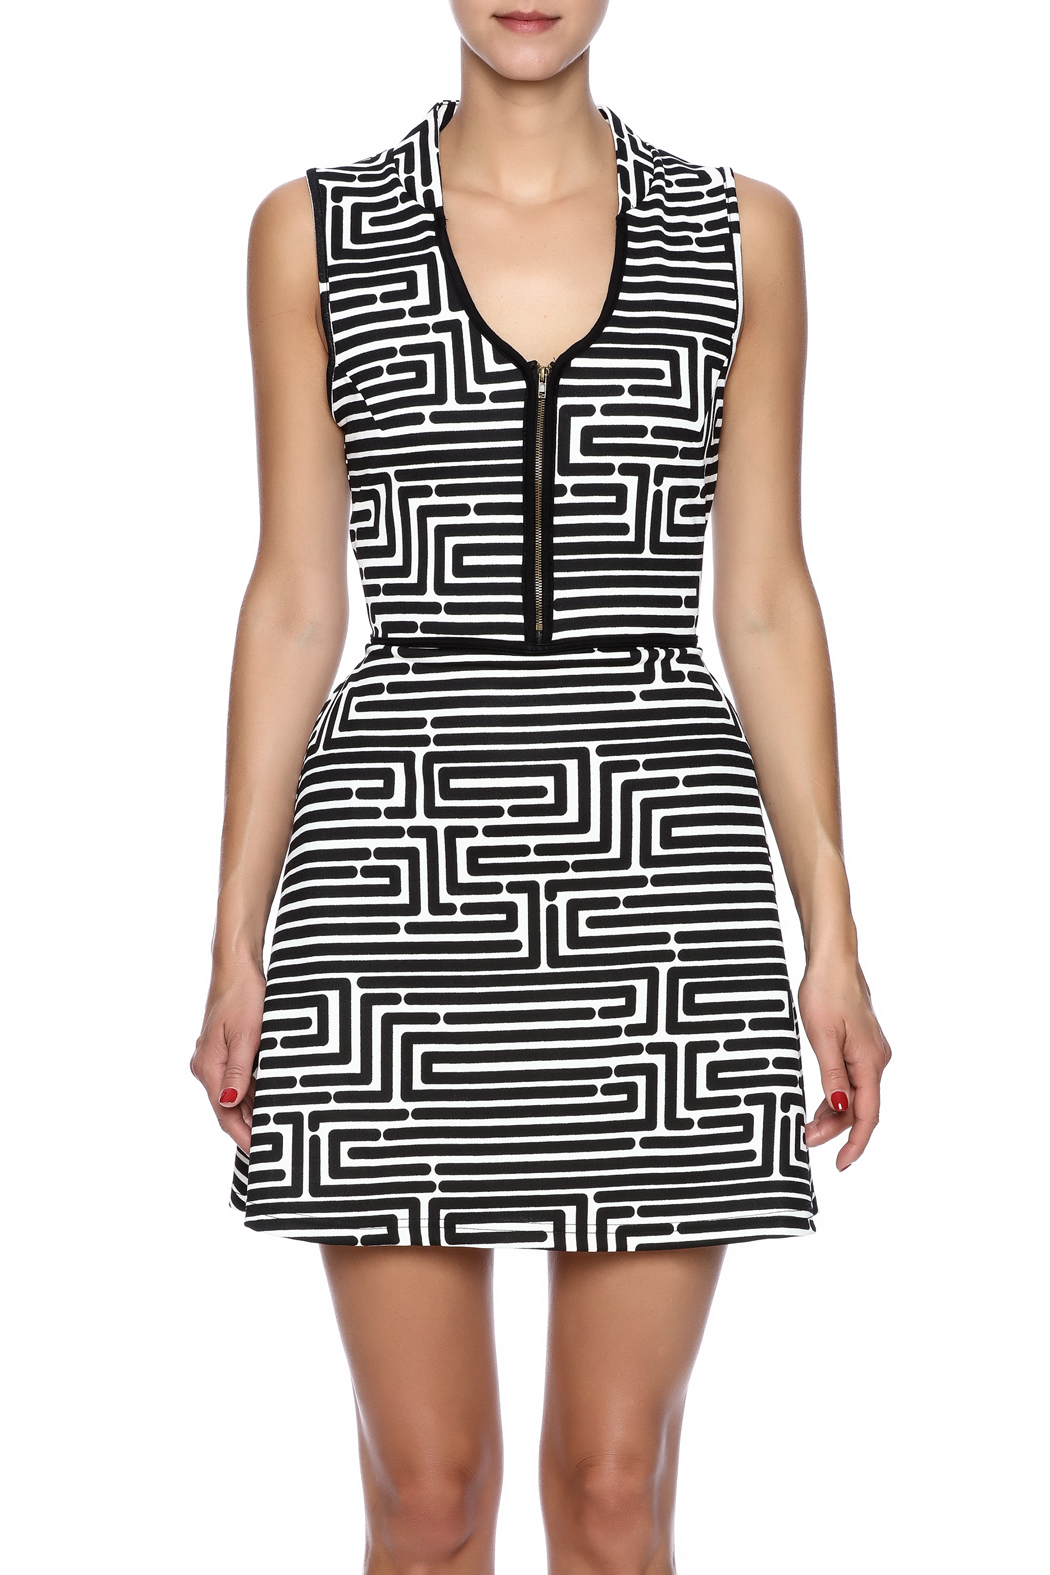 vFish designs Geometric Print Dress - Side Cropped Image